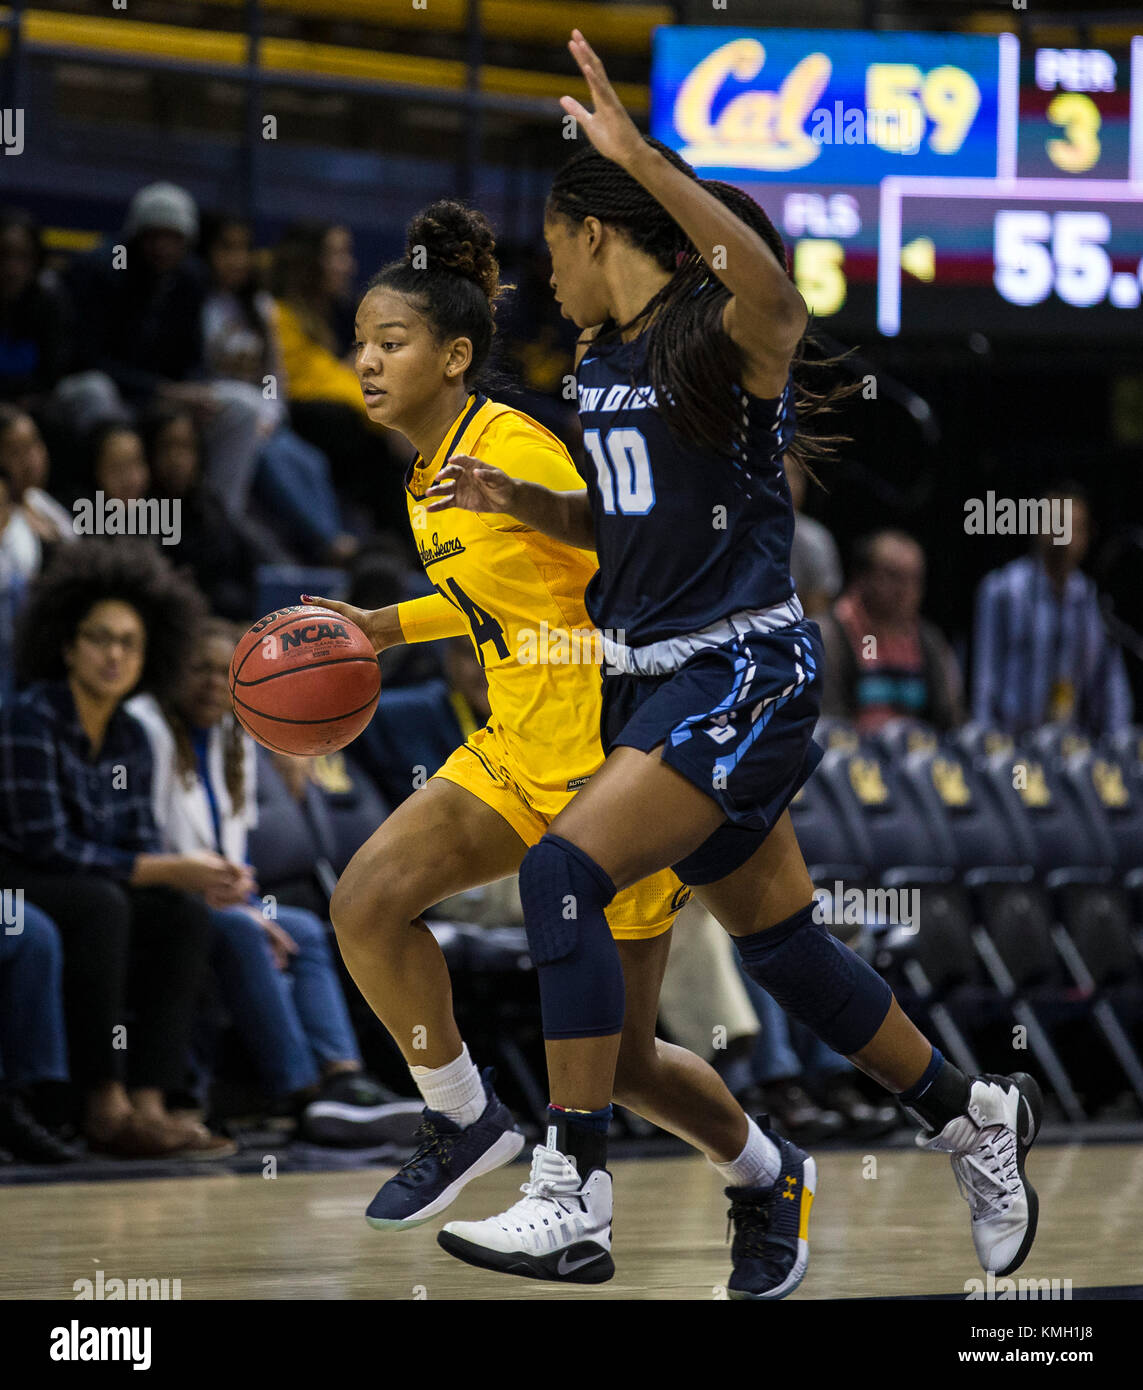 Dec 07 2017 Berkeley CA U.S.A.California guard Kianna Smith (14) game stats scored 8 points, 7 assist and 2 rebounds - Stock Image